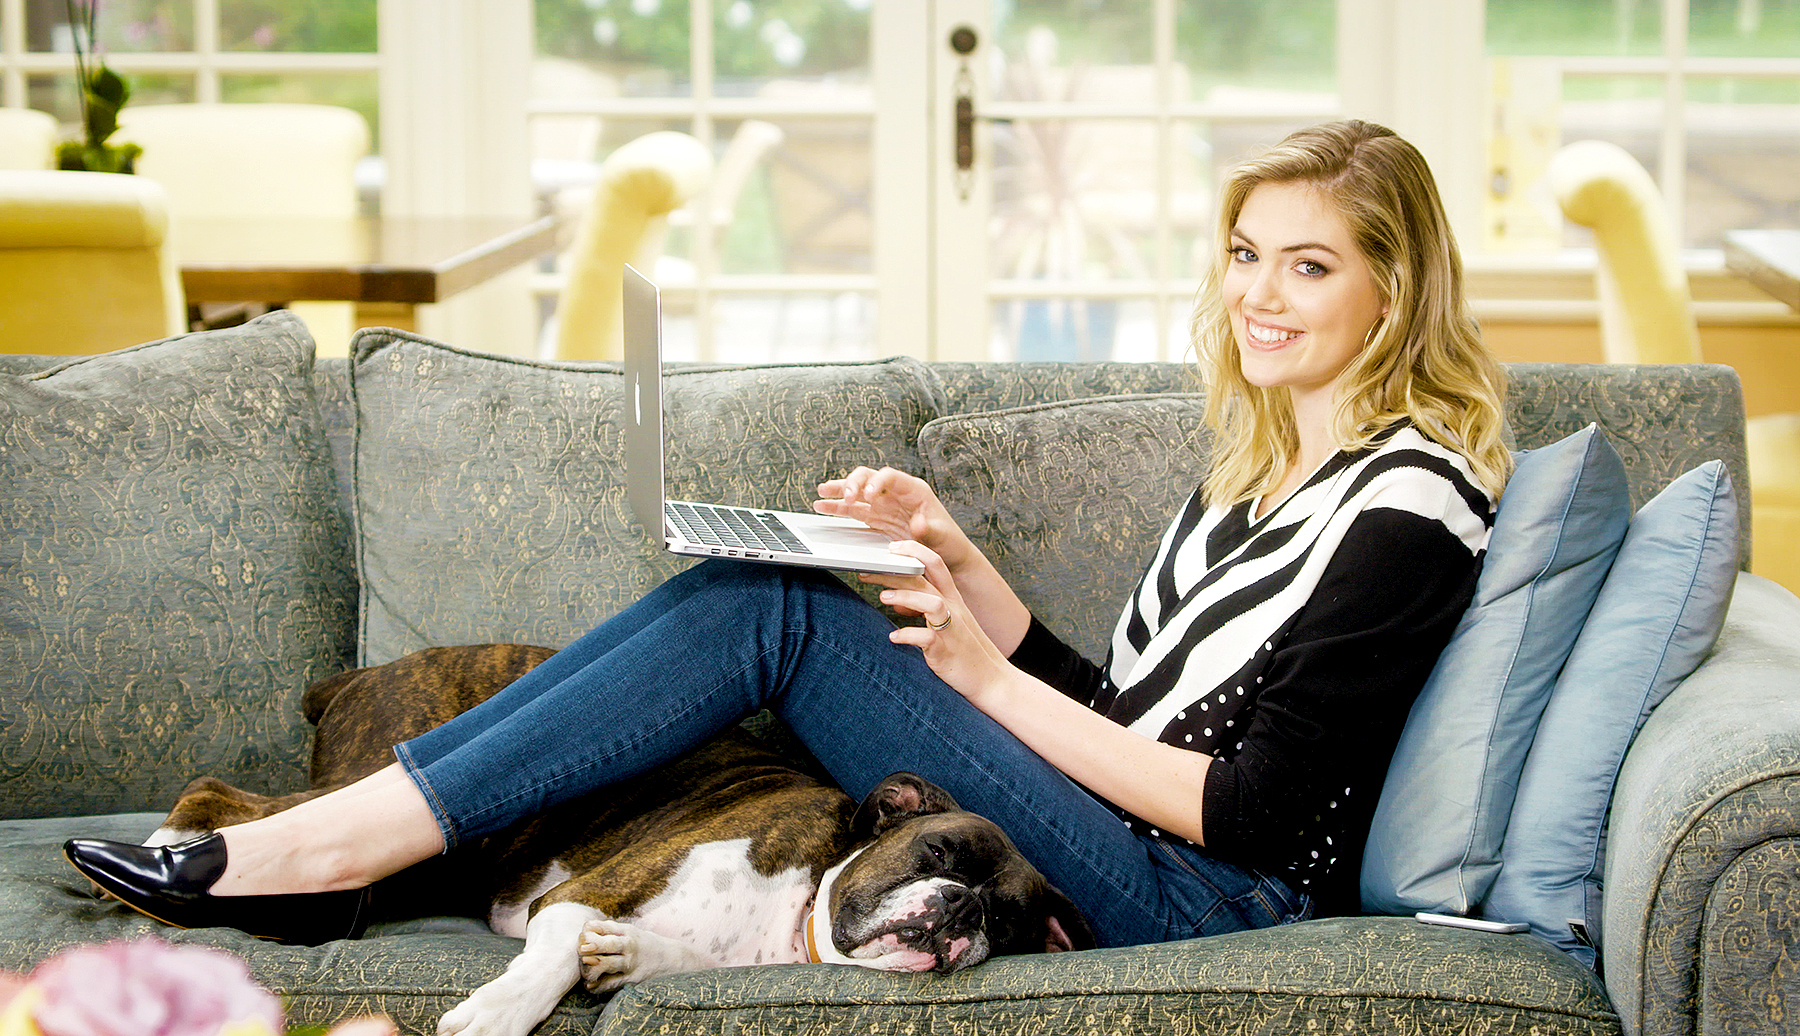 Kate Upton and Harley